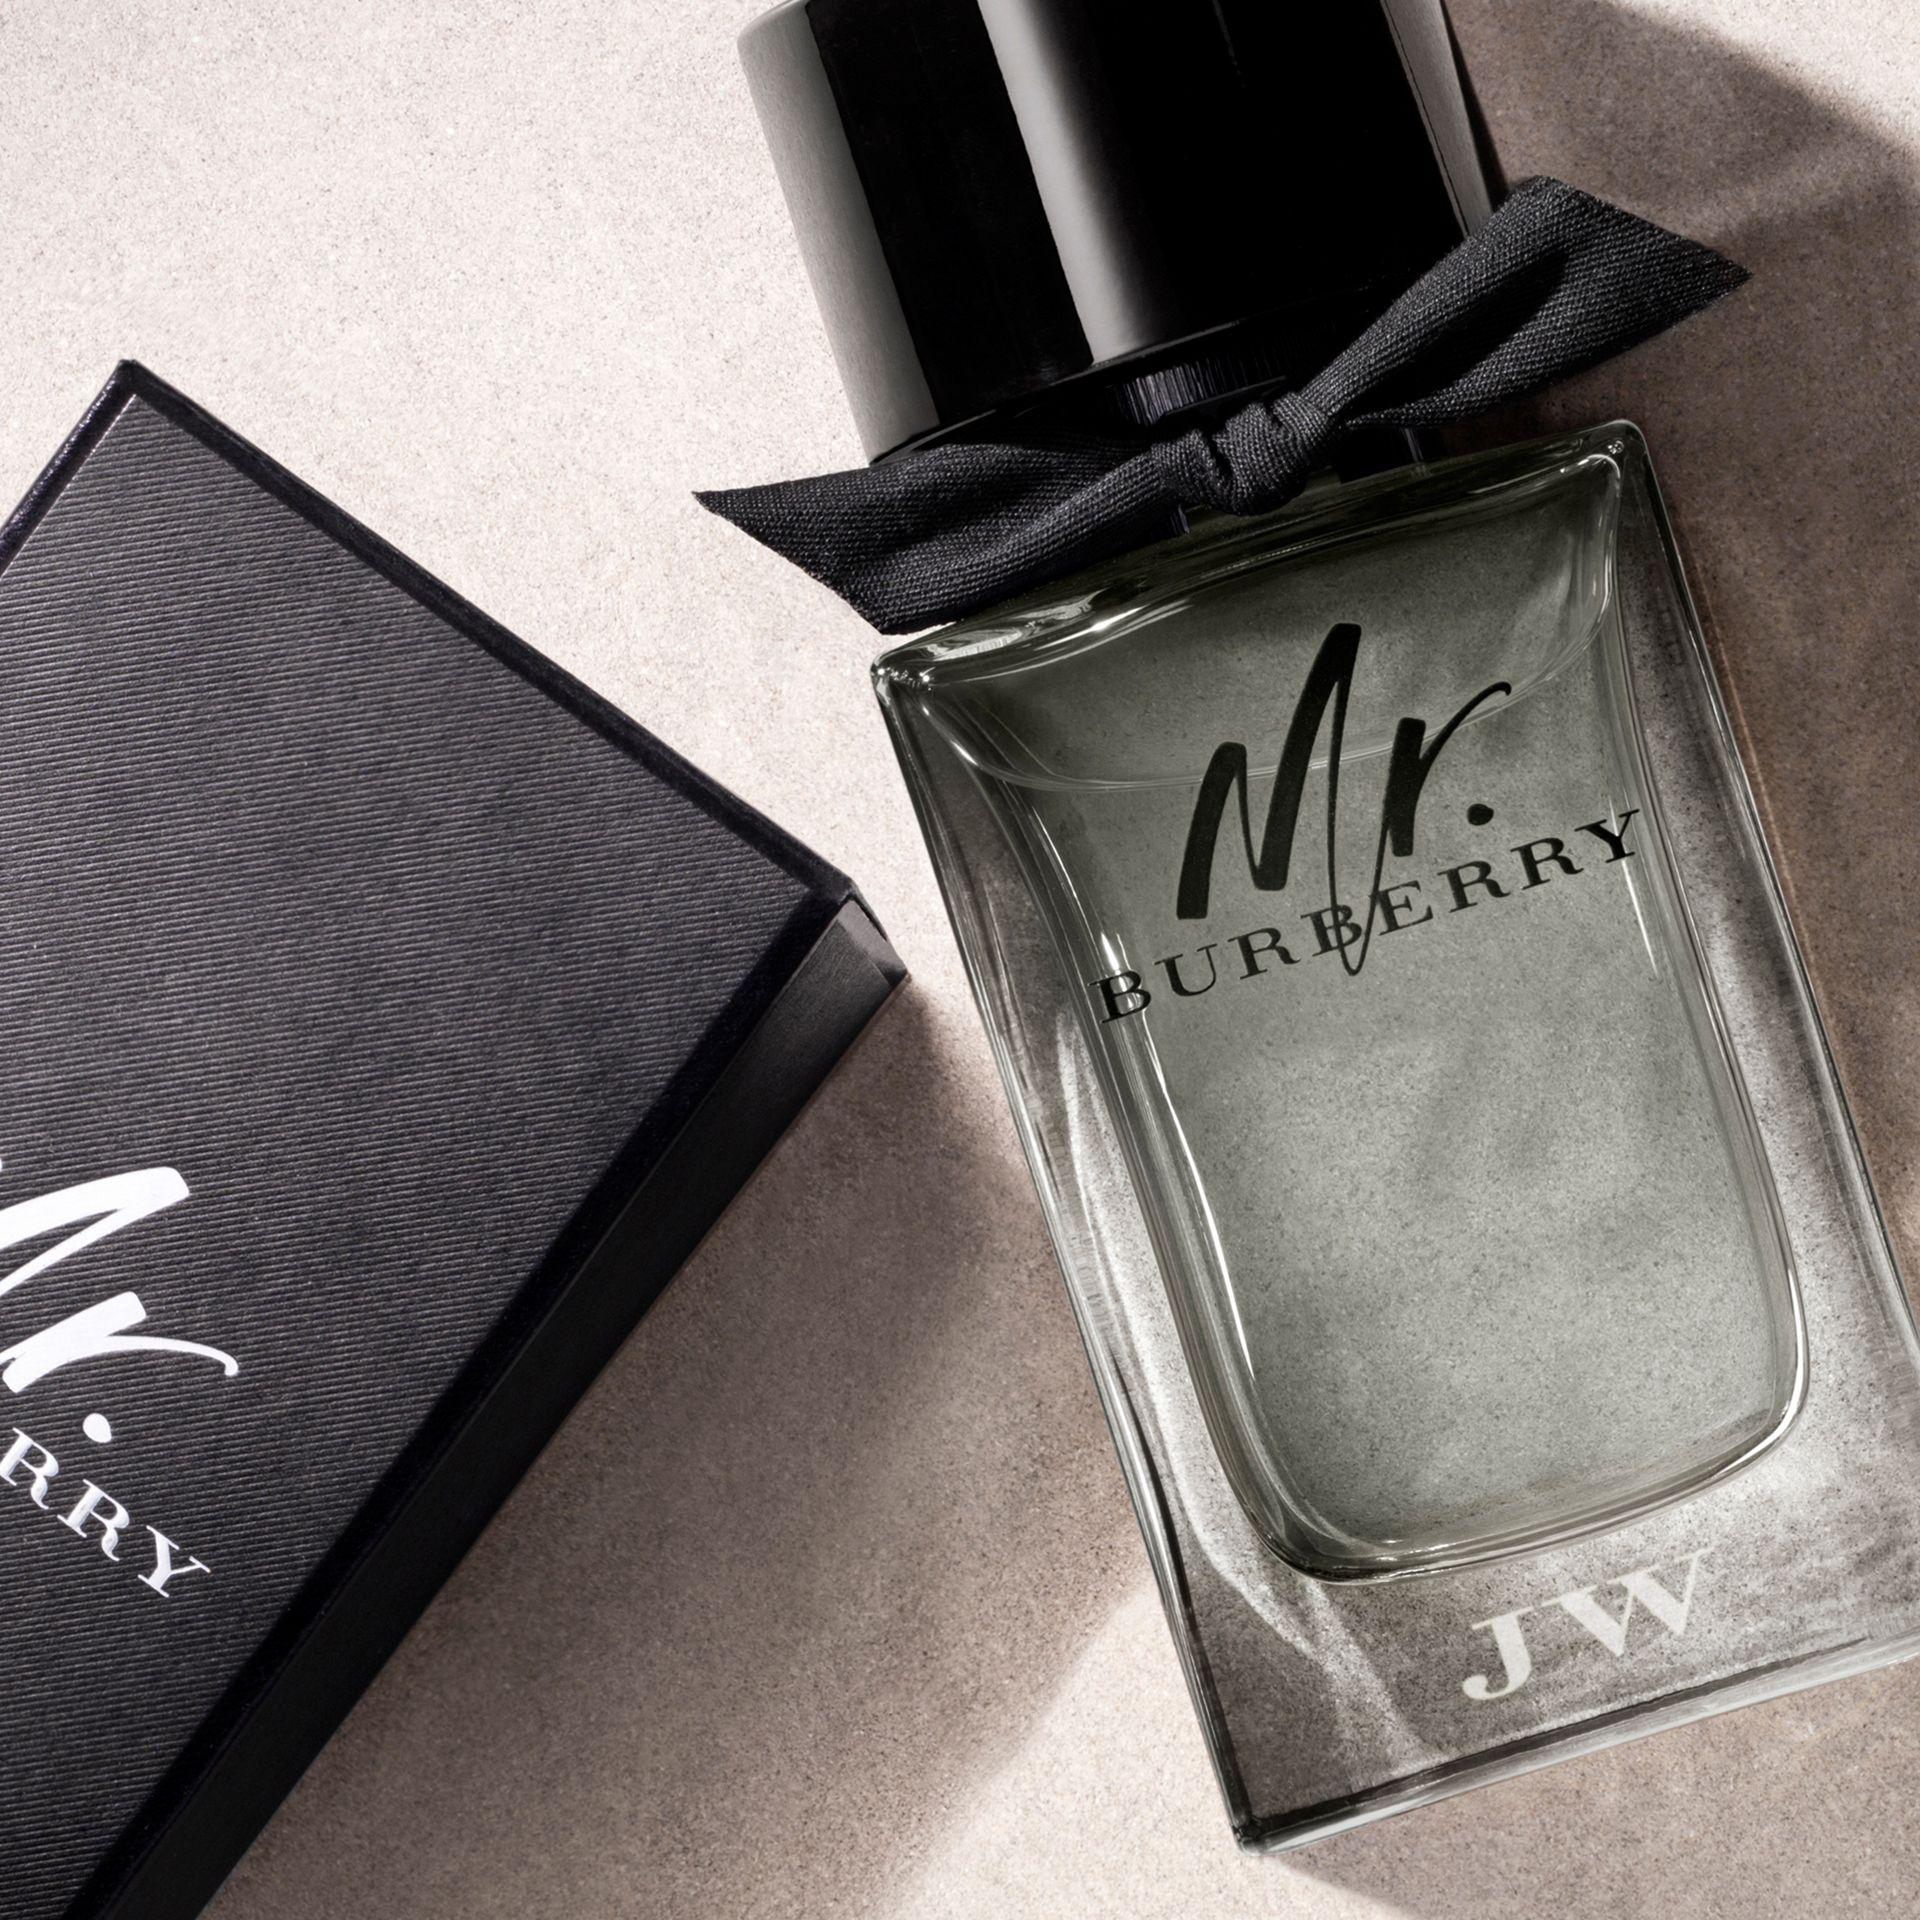 Mr. Burberry Eau de Toilette 1000 ml | Burberry - Galerie-Bild 4